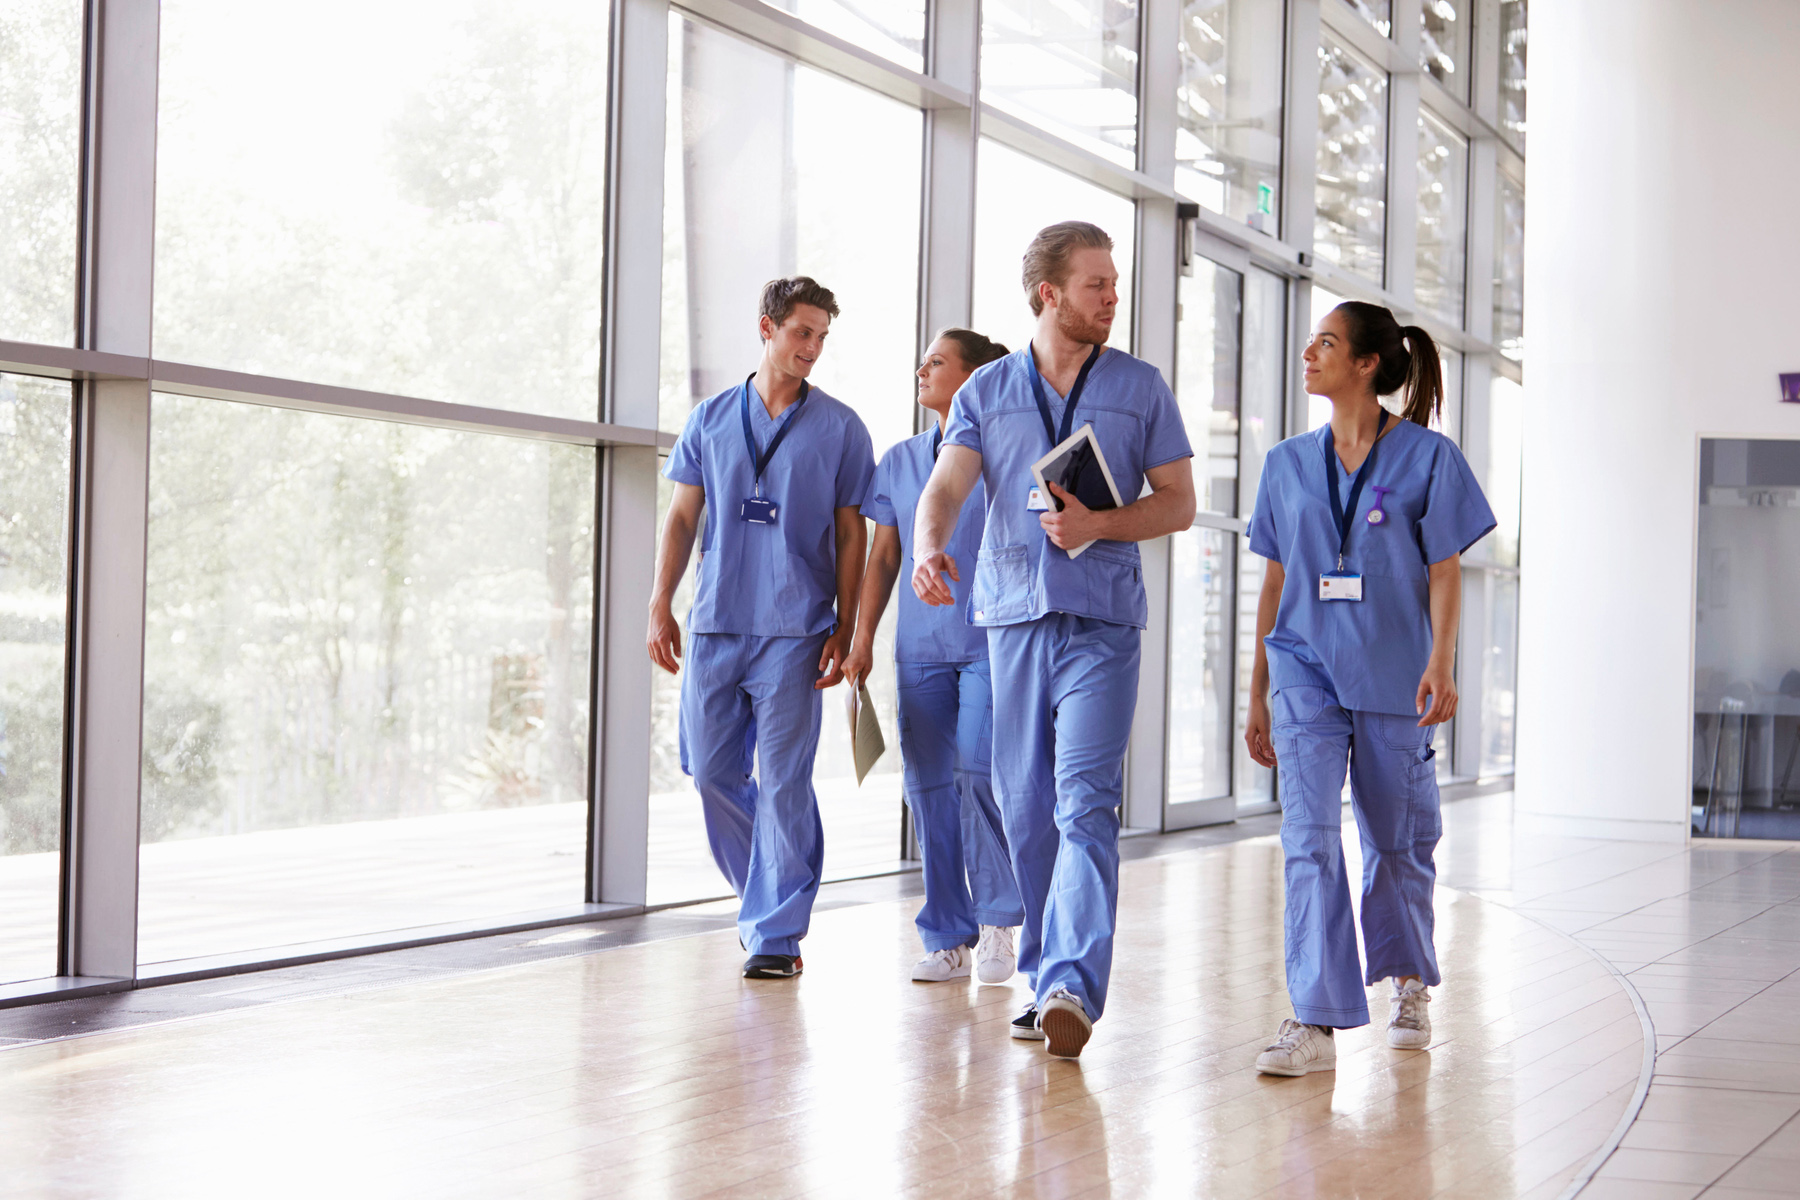 Medical staff walking through a hospital